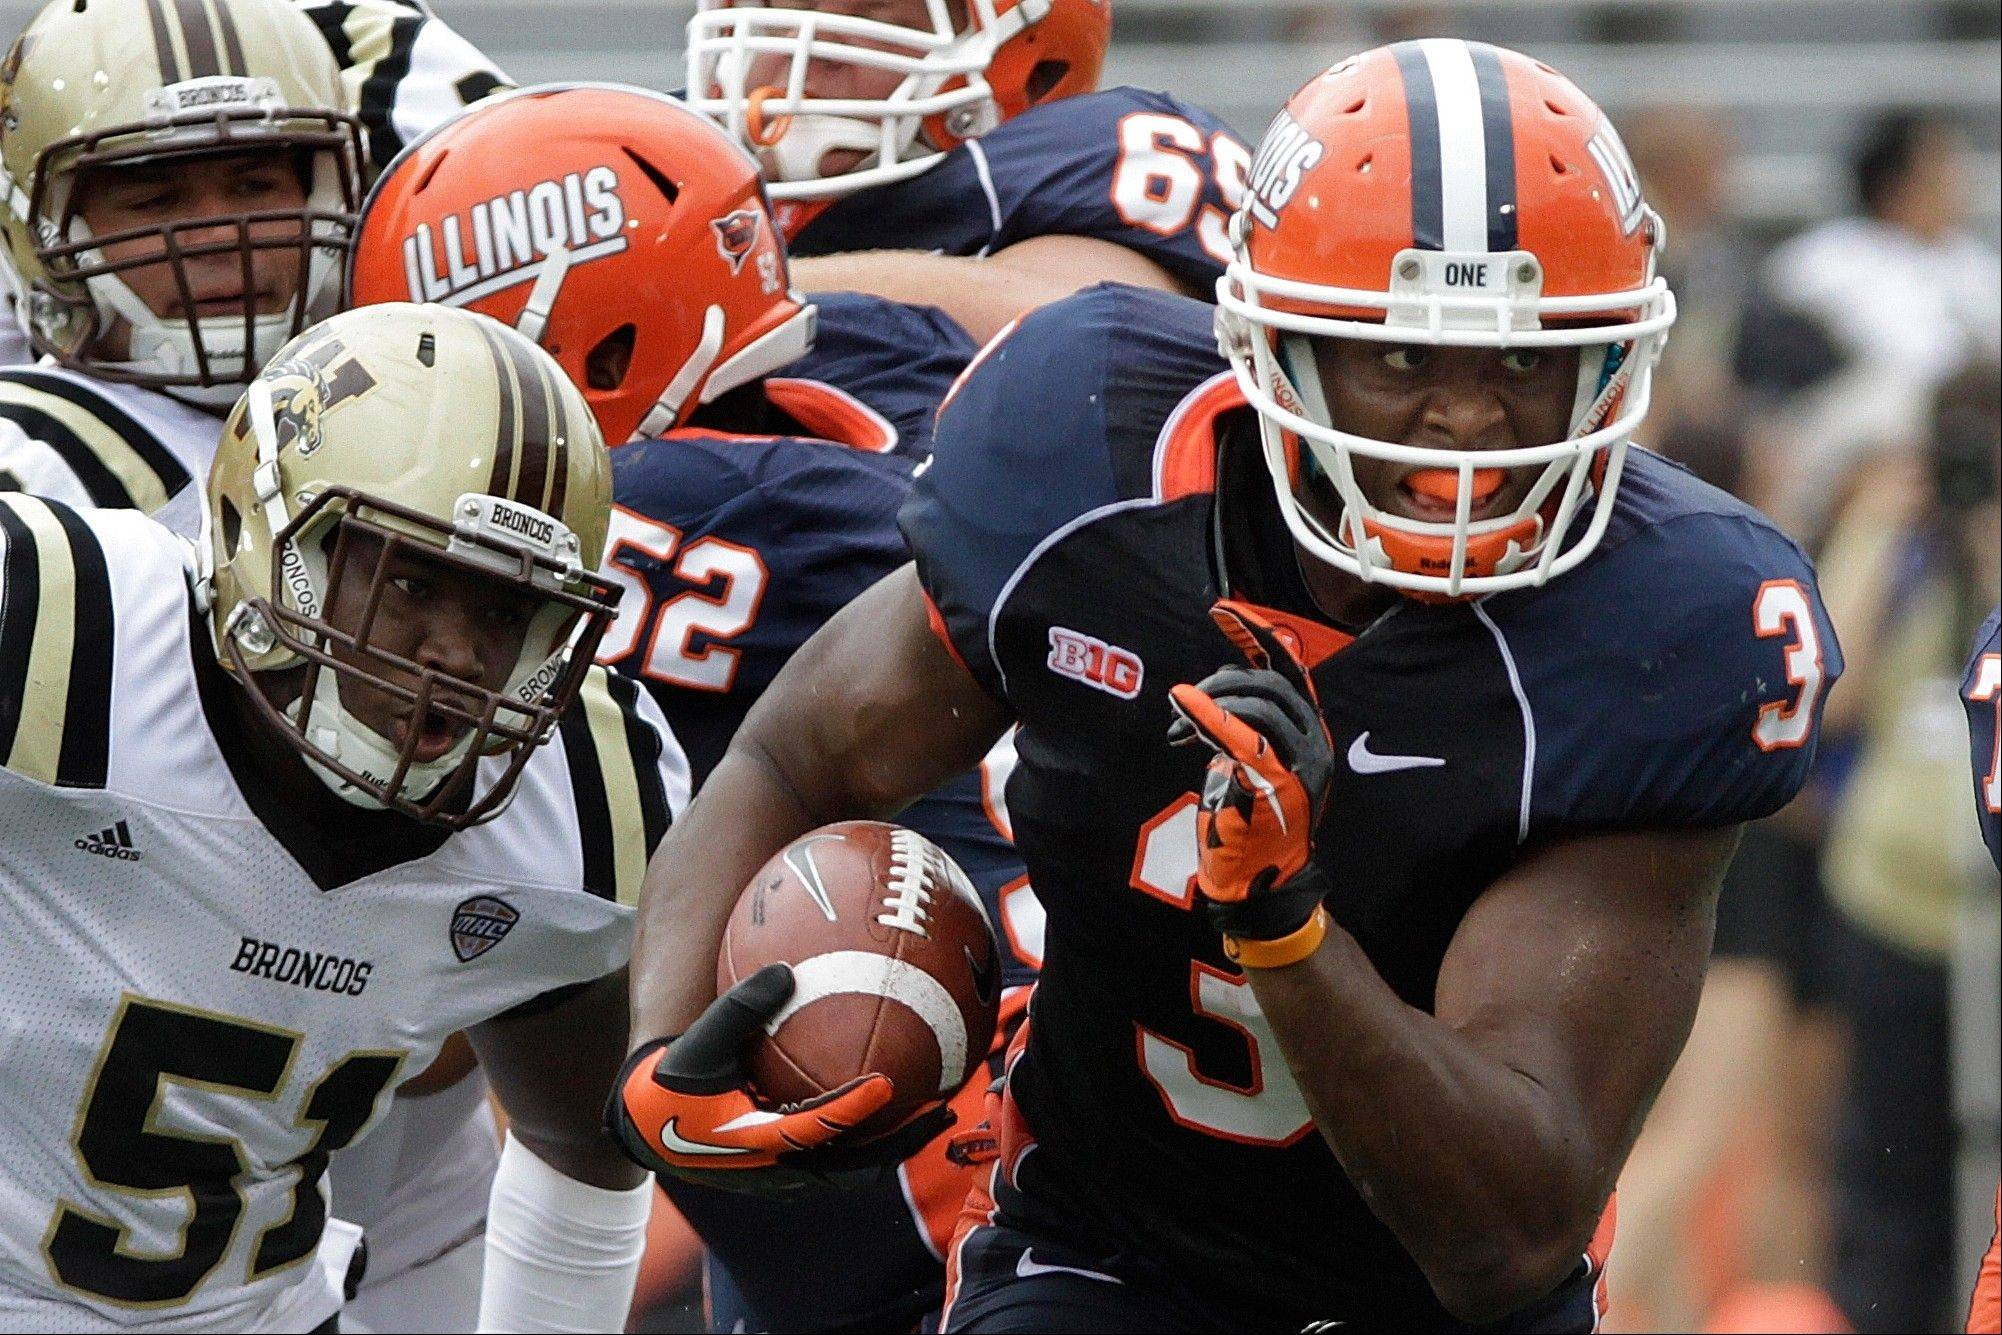 Illinois tight end Jon Davis (3) runs with the ball away from Western Michigan linebacker Desmond Bozeman (51) during the first half of an NCAA college football game Saturday in Champaign, Ill. Illinois defeated Western Michigan 24-7.